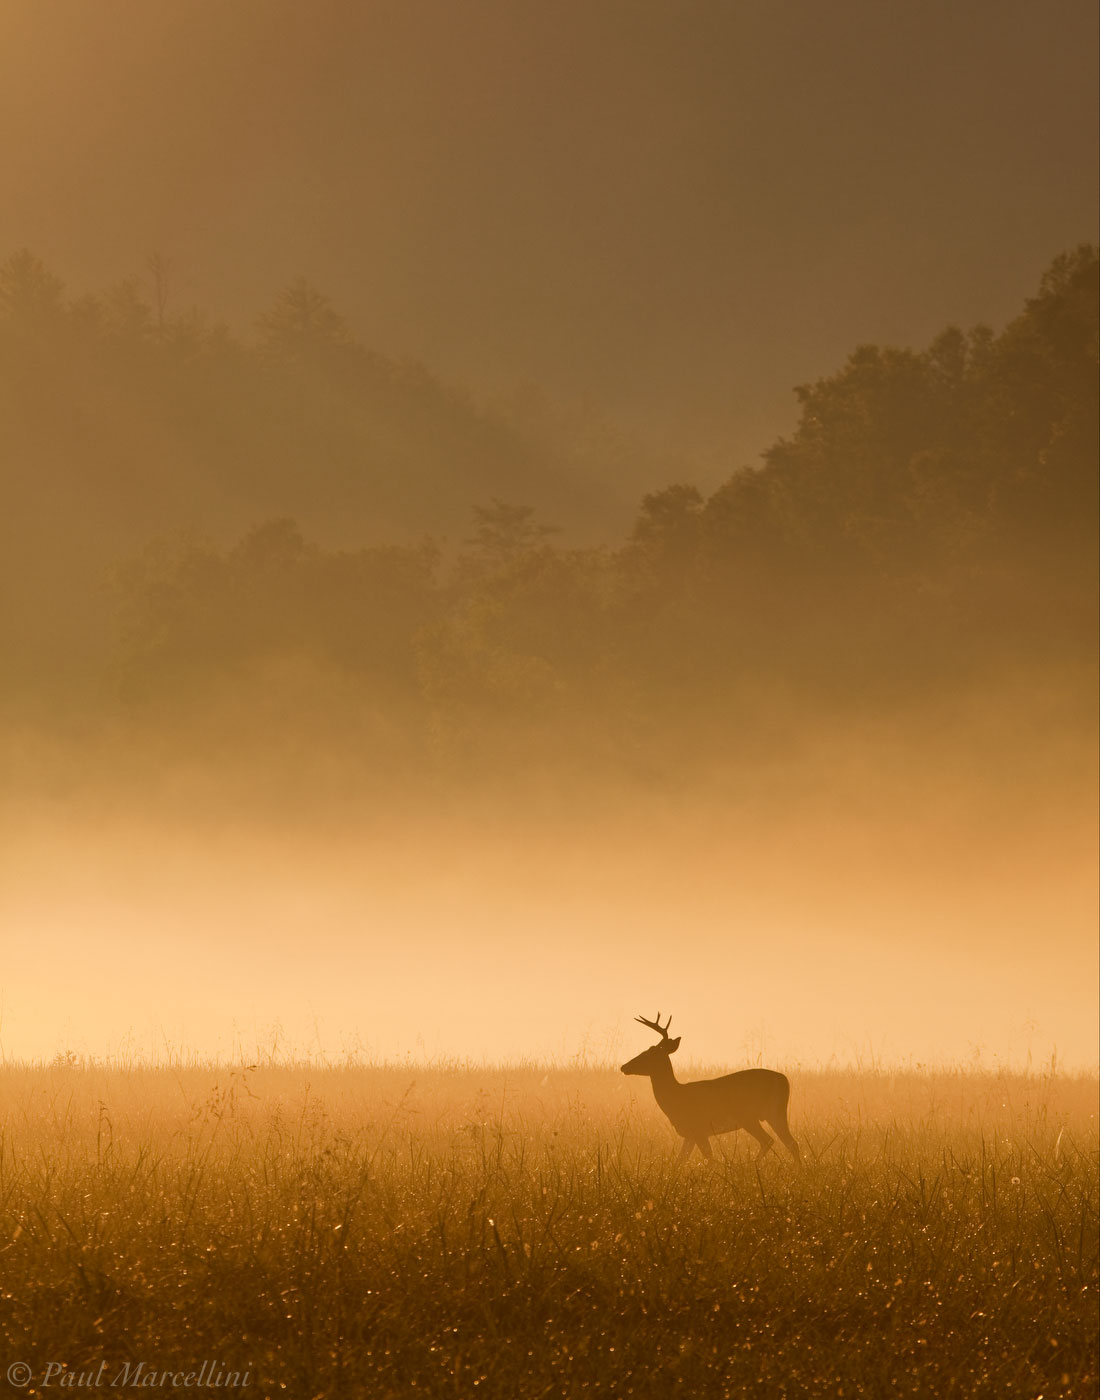 Odocoileus virginianus, white-tailed deer, great smoky mountains, cades cove, foggy, deer, photo